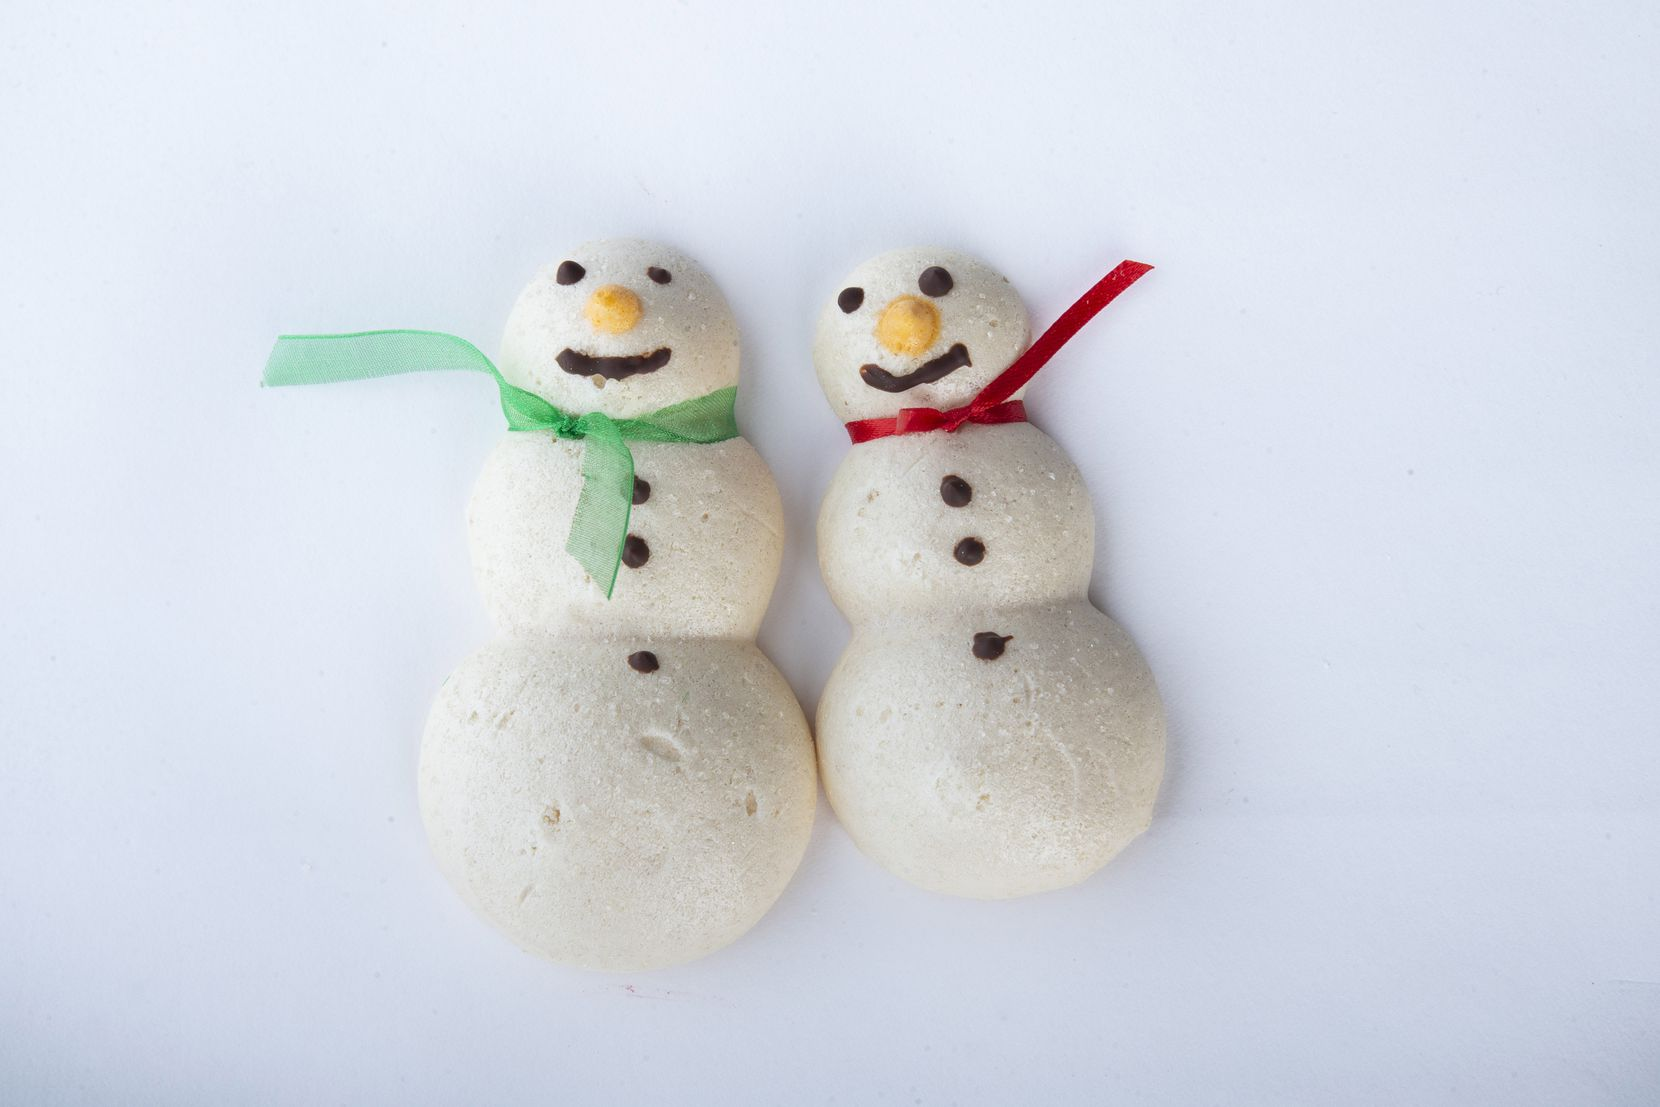 The meringue snowman cookies made by Phyllis Bustillos won third place in the special diet category.